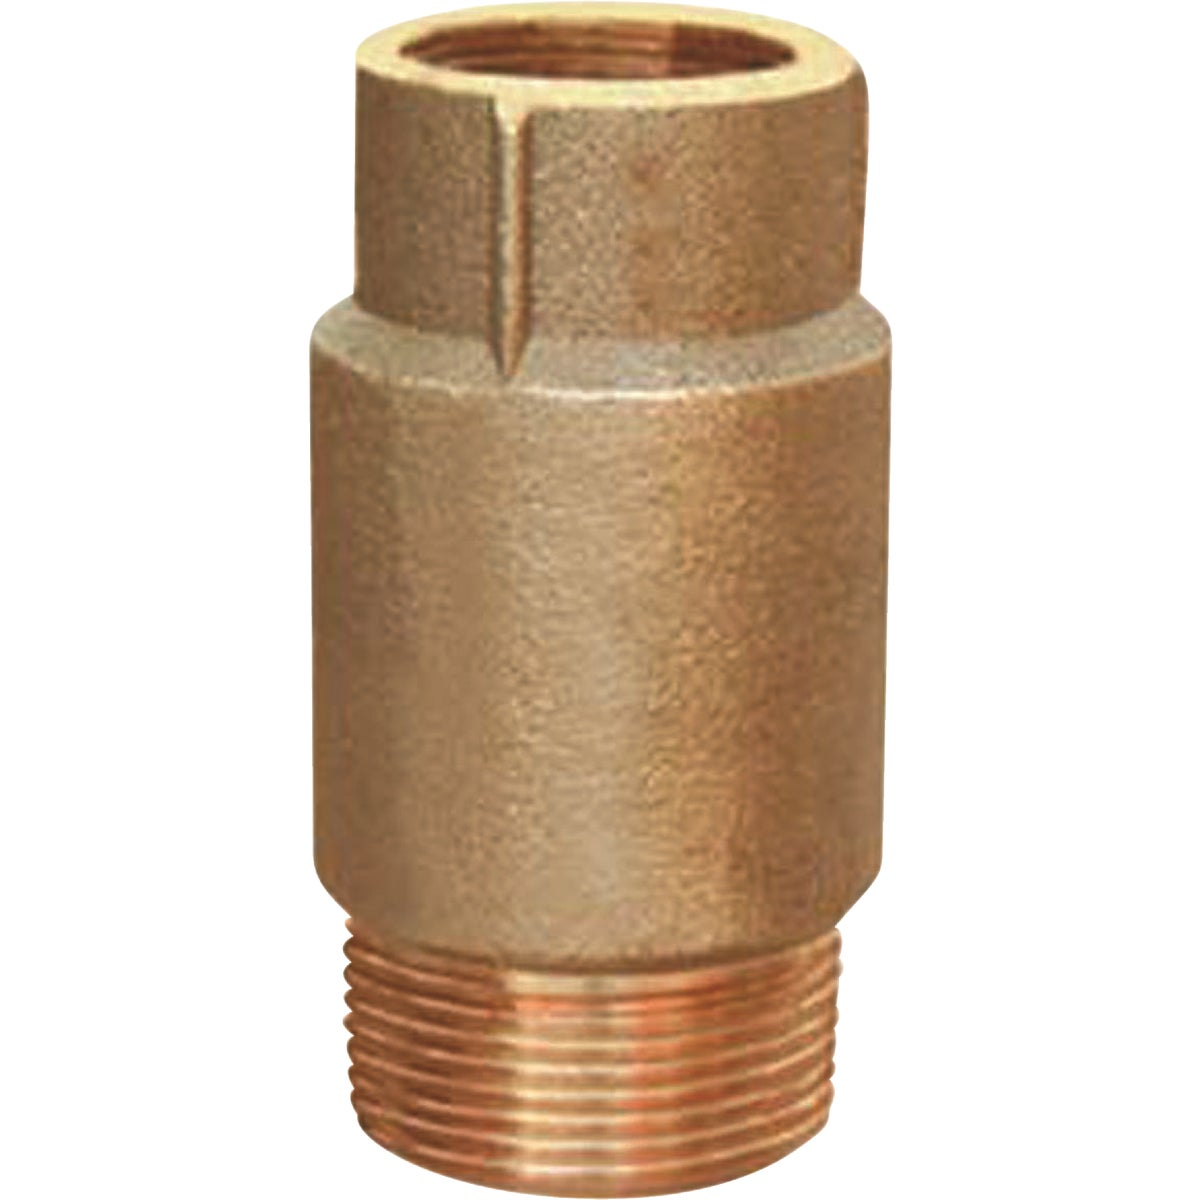 1X1-1/4F/M TH CK VALVE - 617SB by Simmons Mfg Co